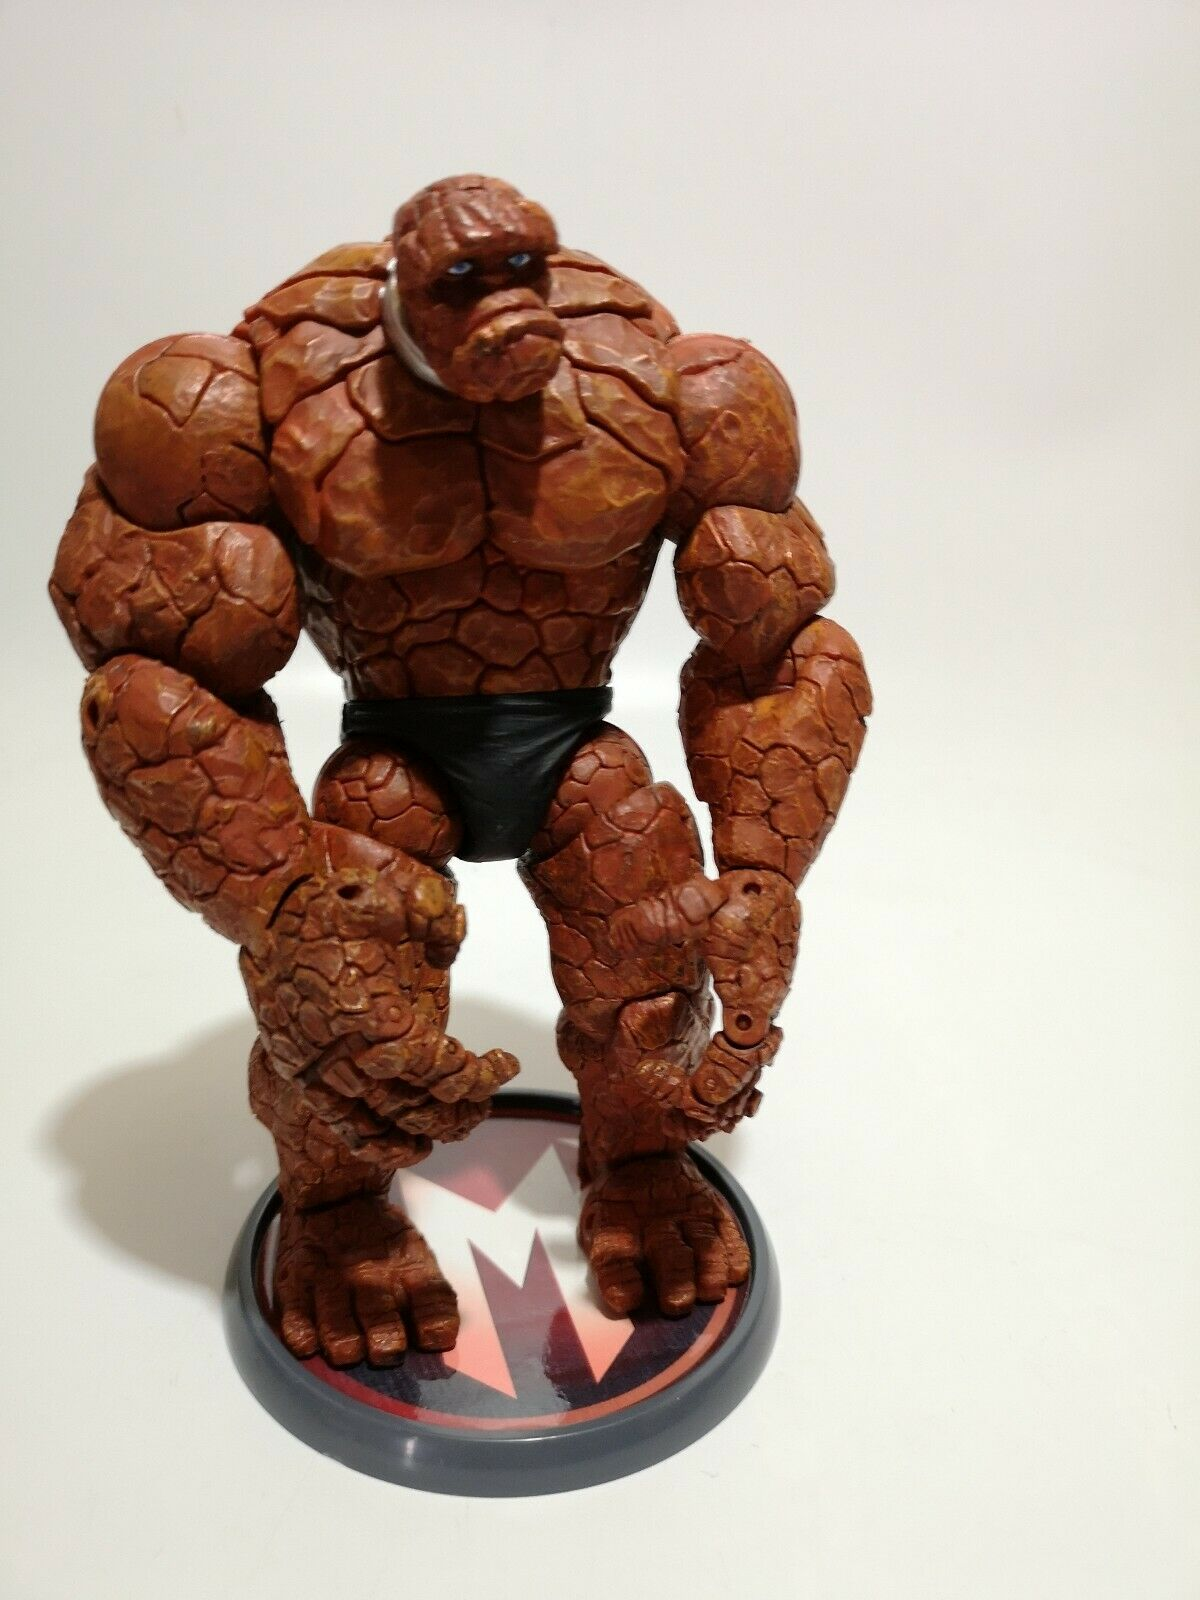 TOYBIZ Marvel Legends - HOUSE OF M - Box Set - The Thing - Loose Figure